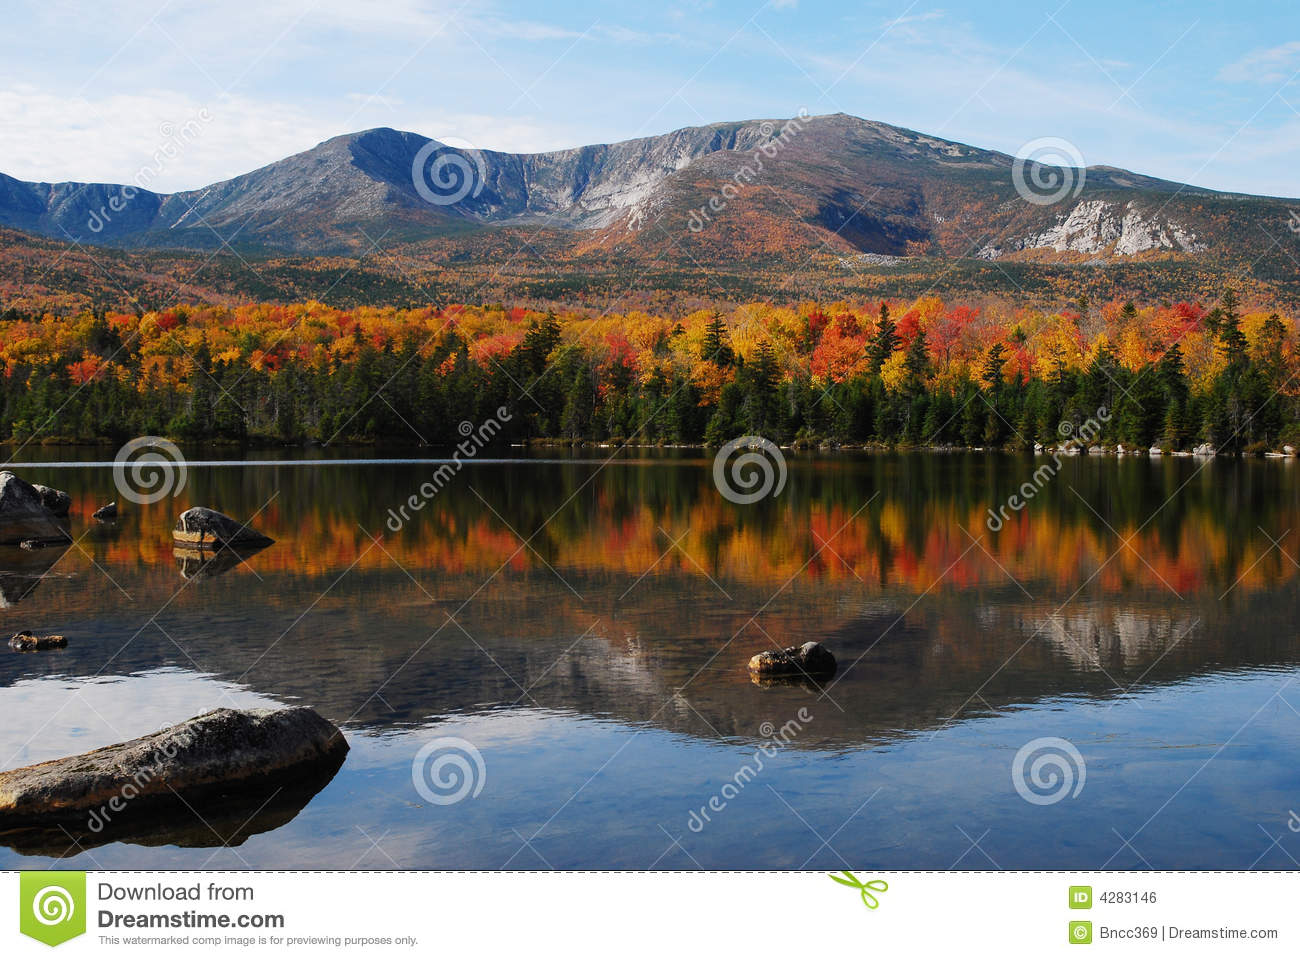 Best Time To Travel To Maine In The Fall